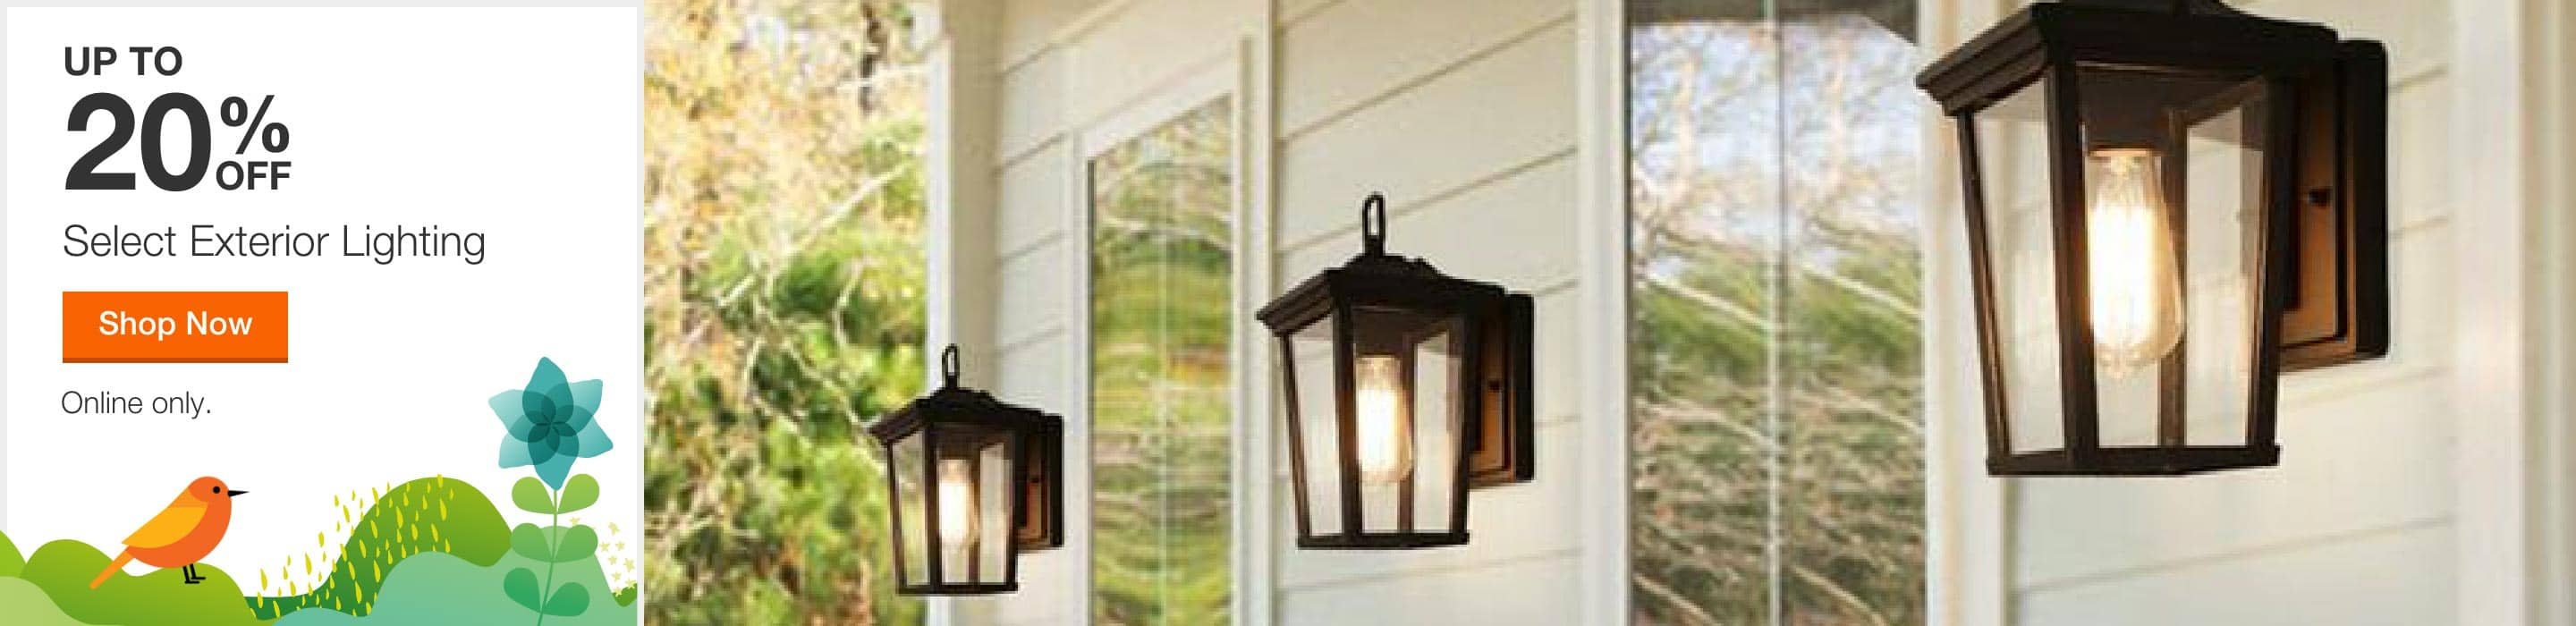 up to 20% off select exterior lighting. shop now. online only.